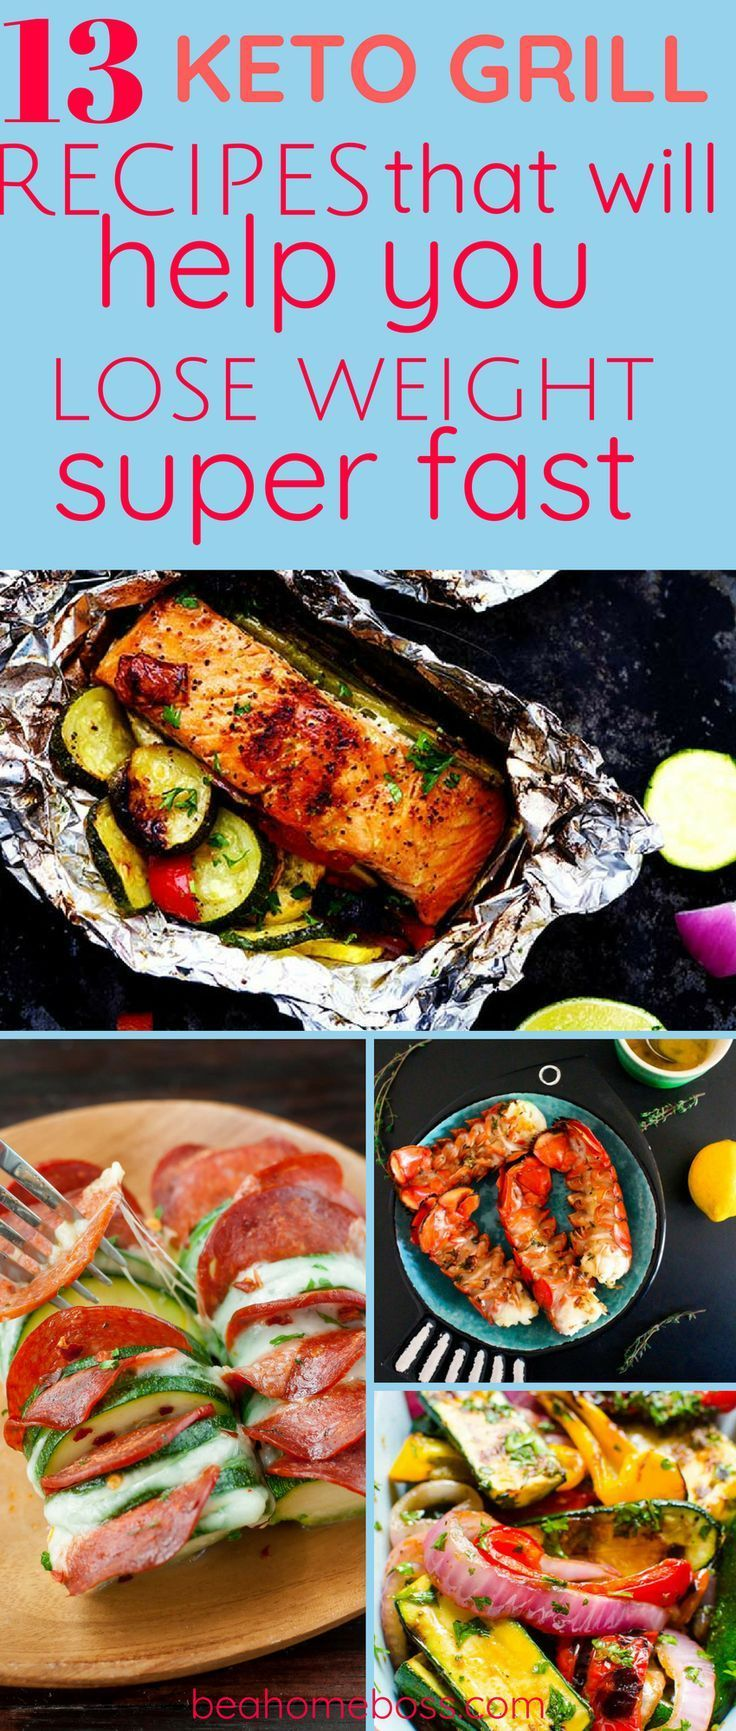 13 Keto Friendly Grill Recipes That Will Help You Lose Weight Fast